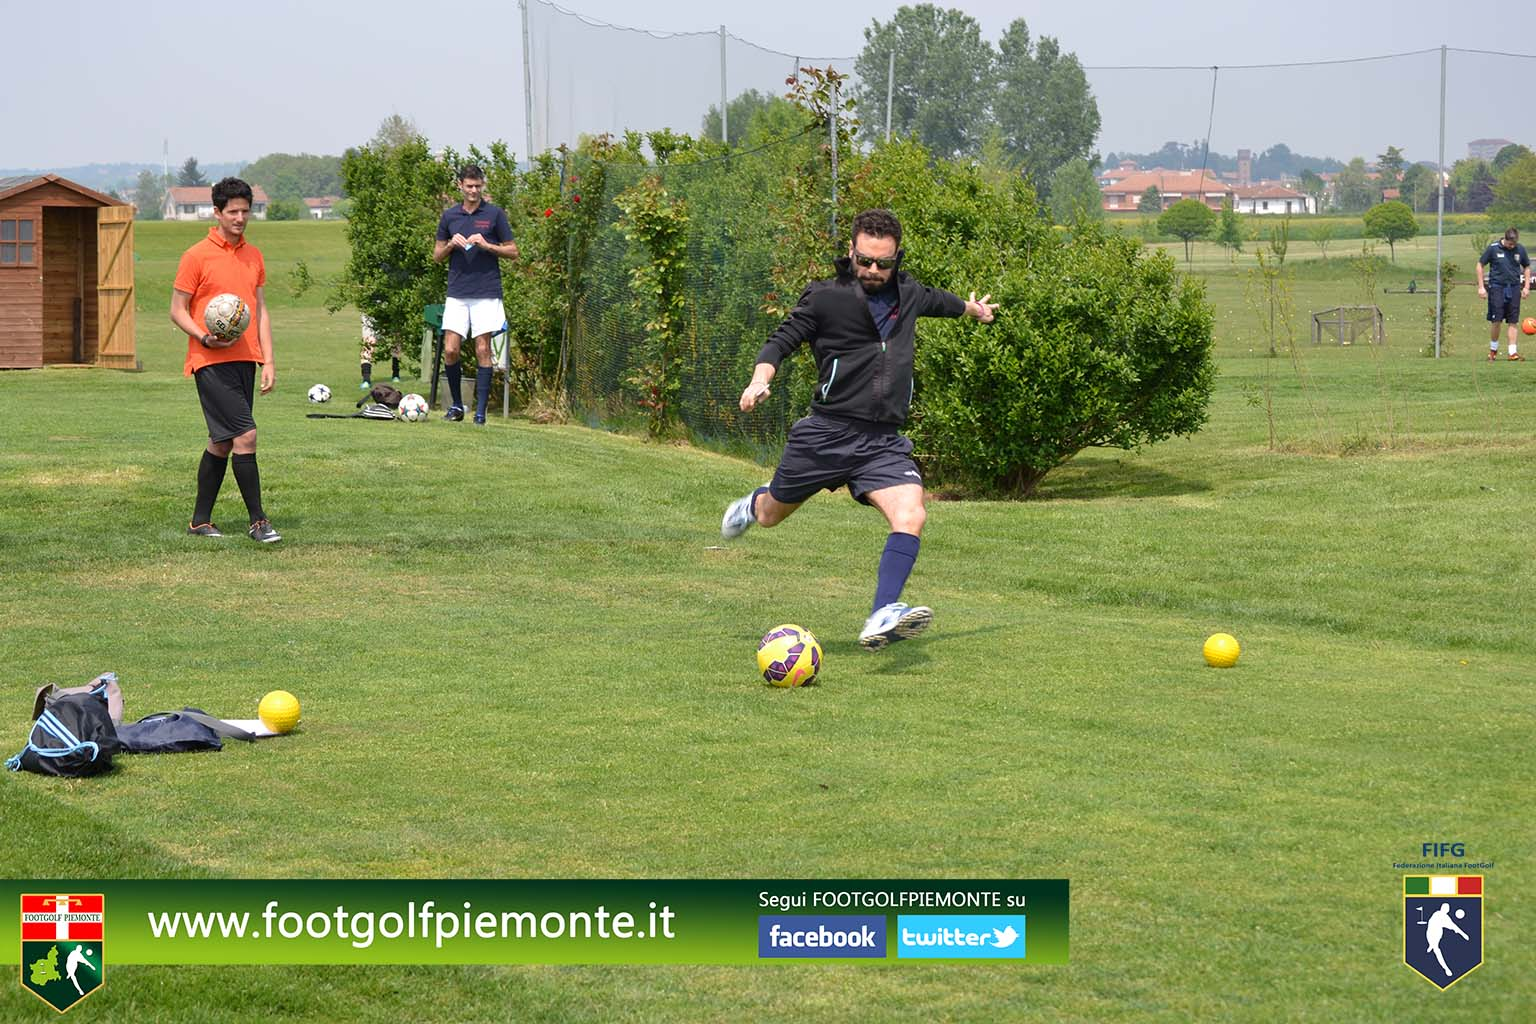 FOTO 9 Regions' Cup Footgolf Piemonte 2016 Golf Città di Asti (At) 30apr16-55